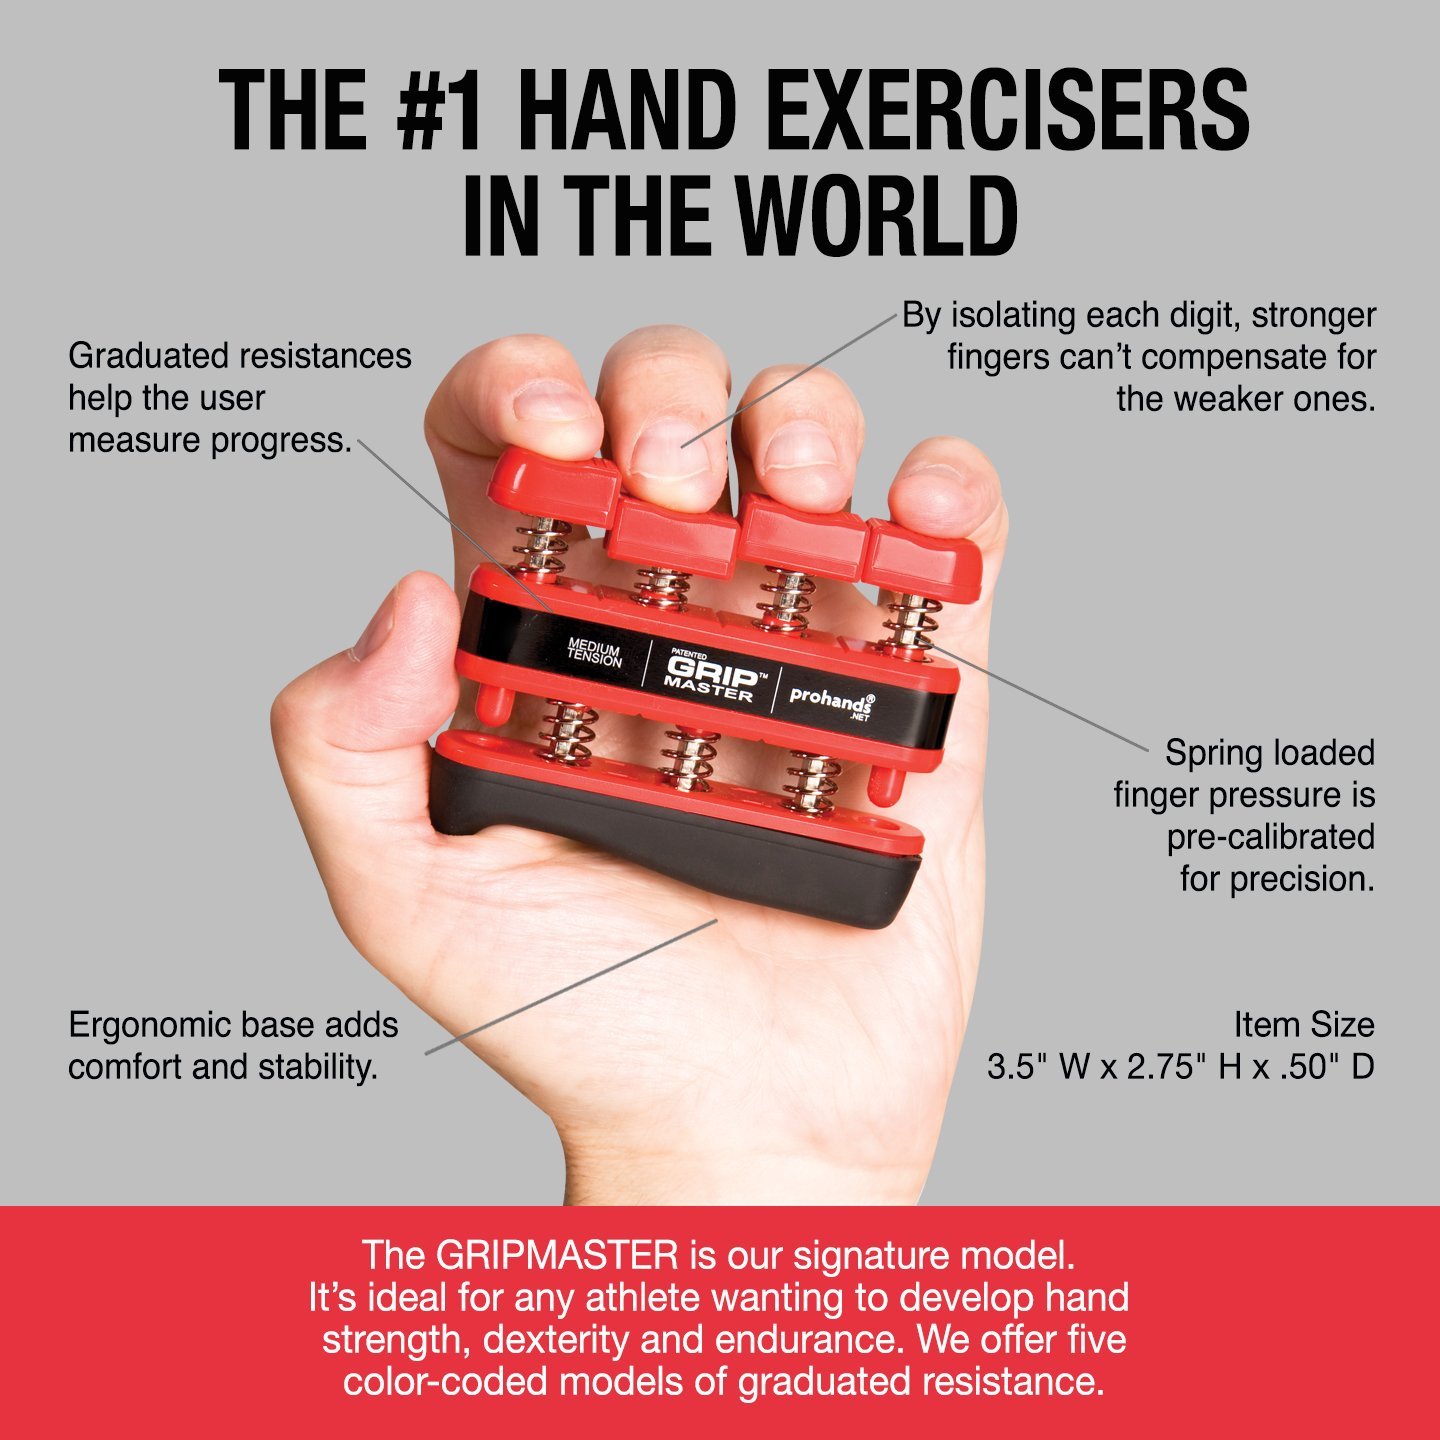 GRIP MASTER Gripmaster 14002-RED Hand Exerciser Red, Medium Tension (7-Pounds per Finger) by GRIP MASTER (Image #3)